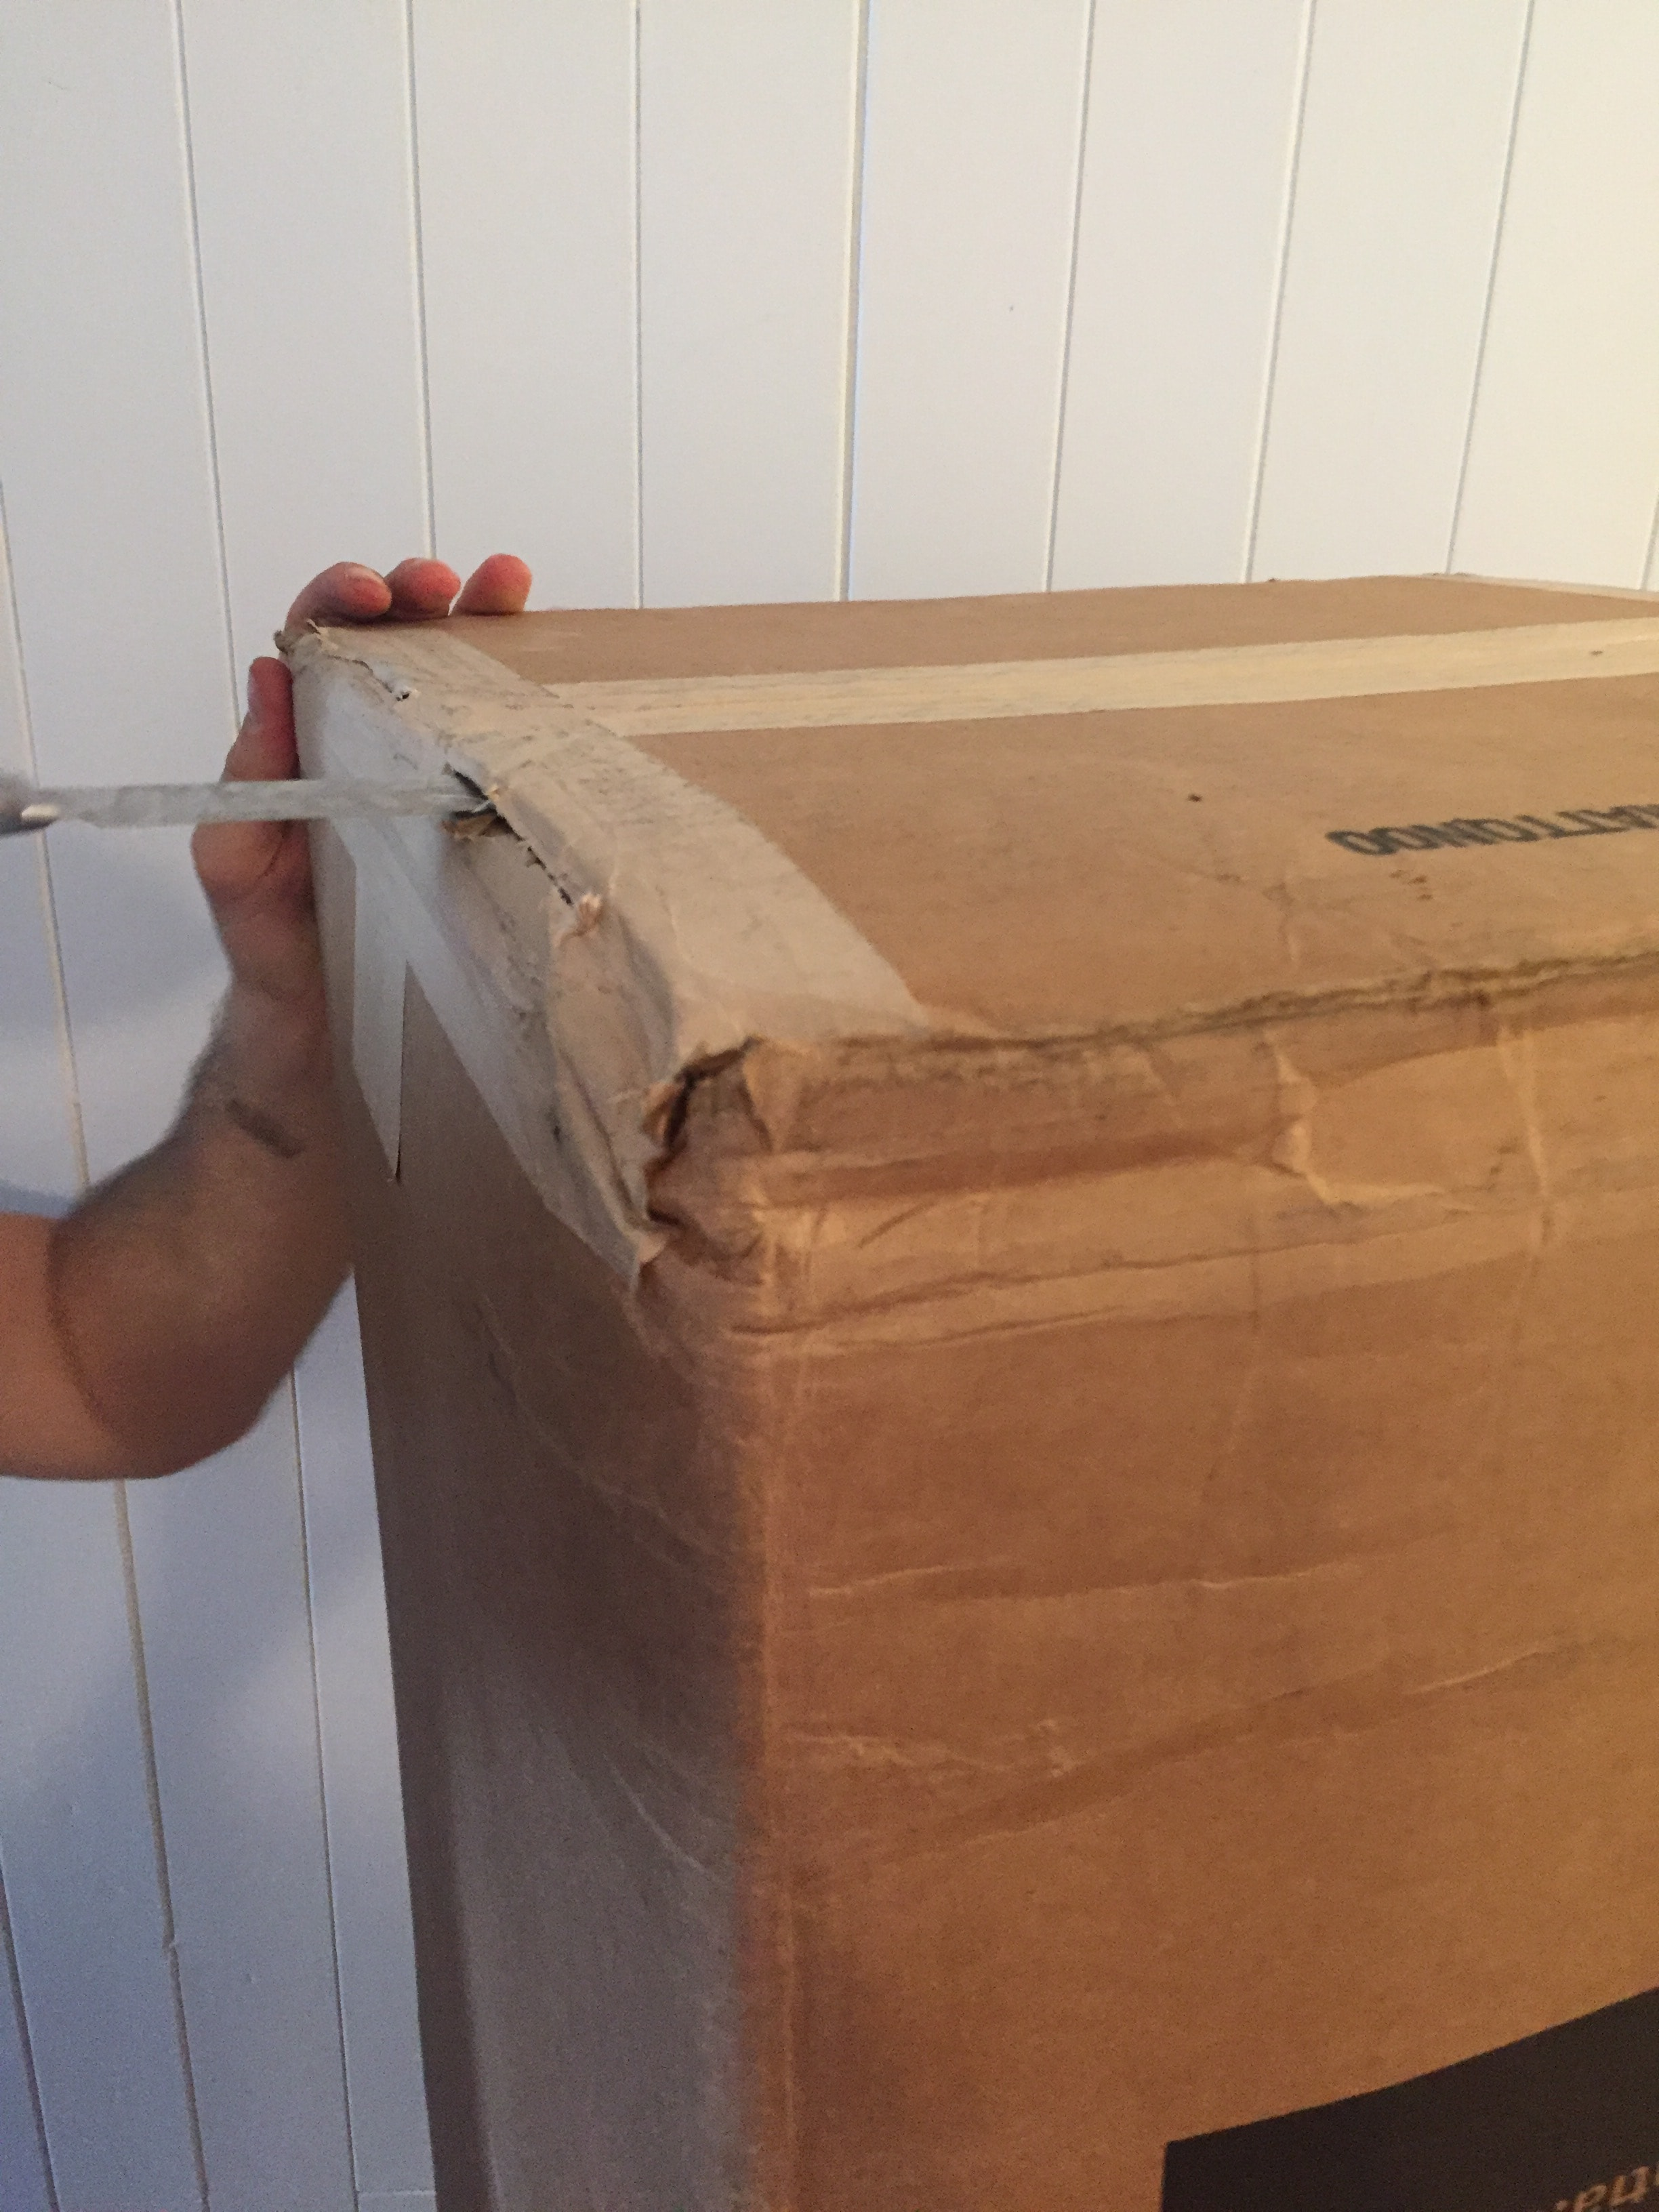 Rolled up Essentia mattress with paper tape and reinforced with heavy-duty-staples.